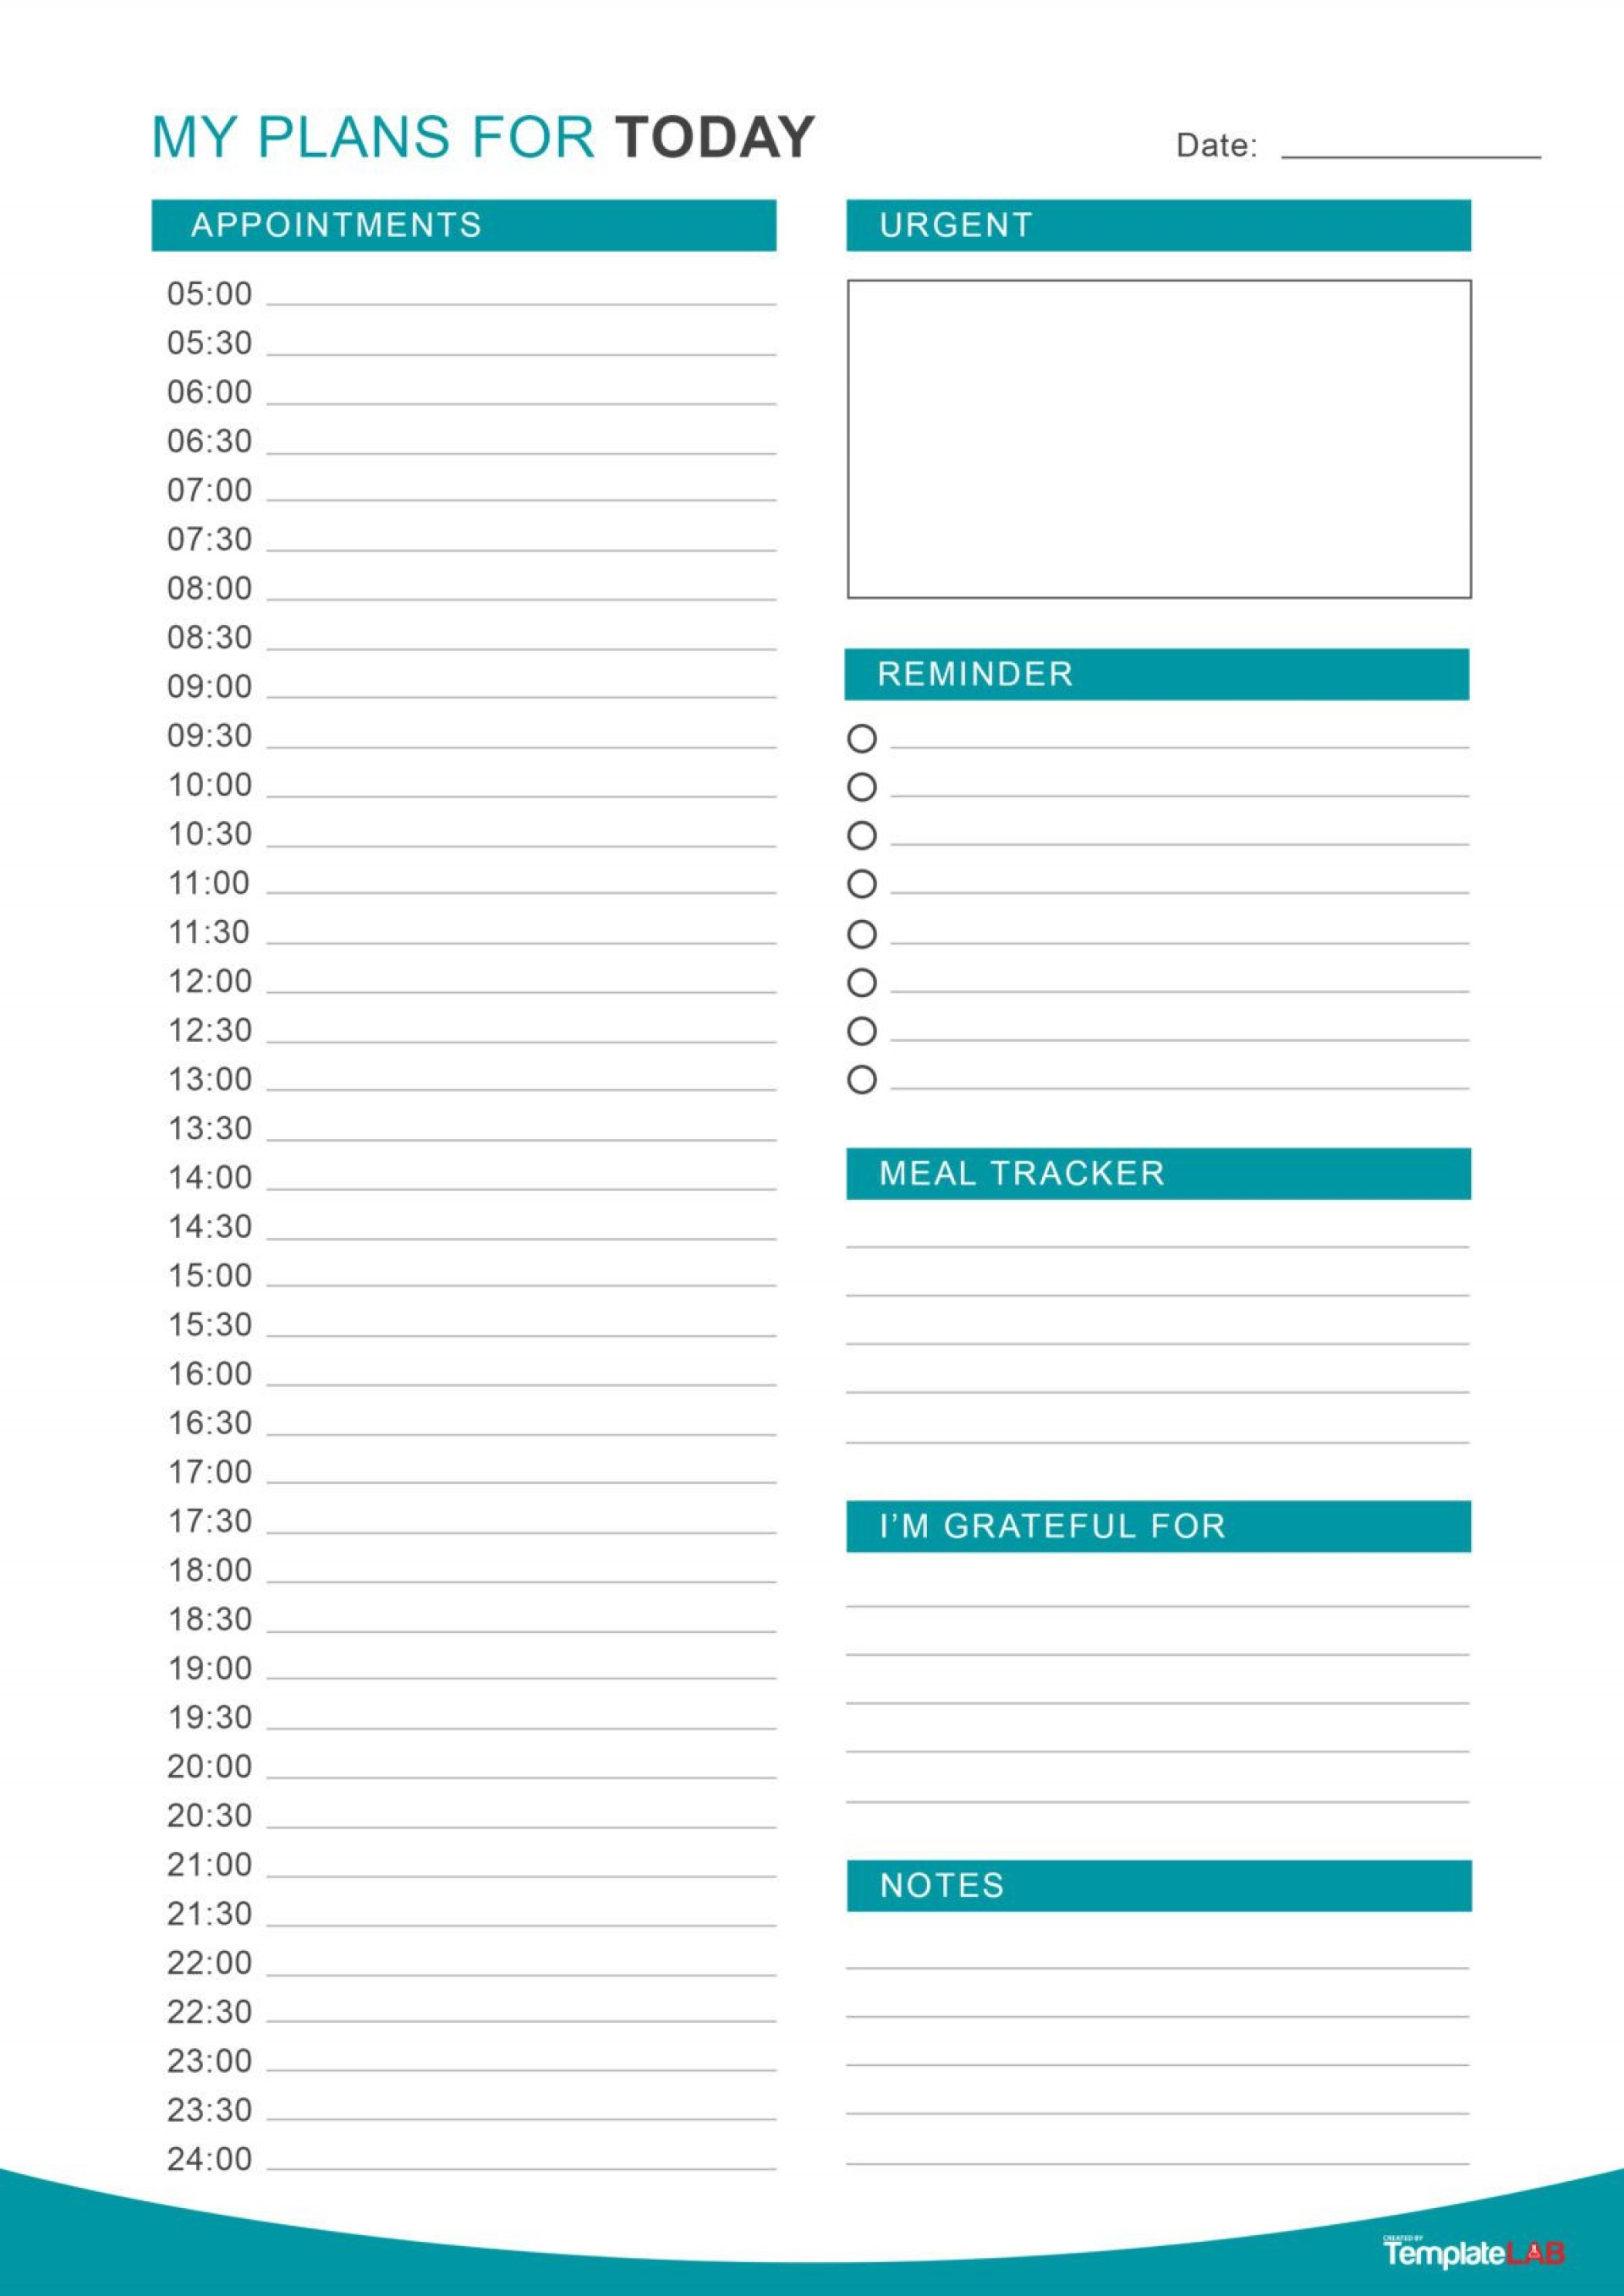 005 Surprising Printable Daily Schedule Template Inspiration 1920